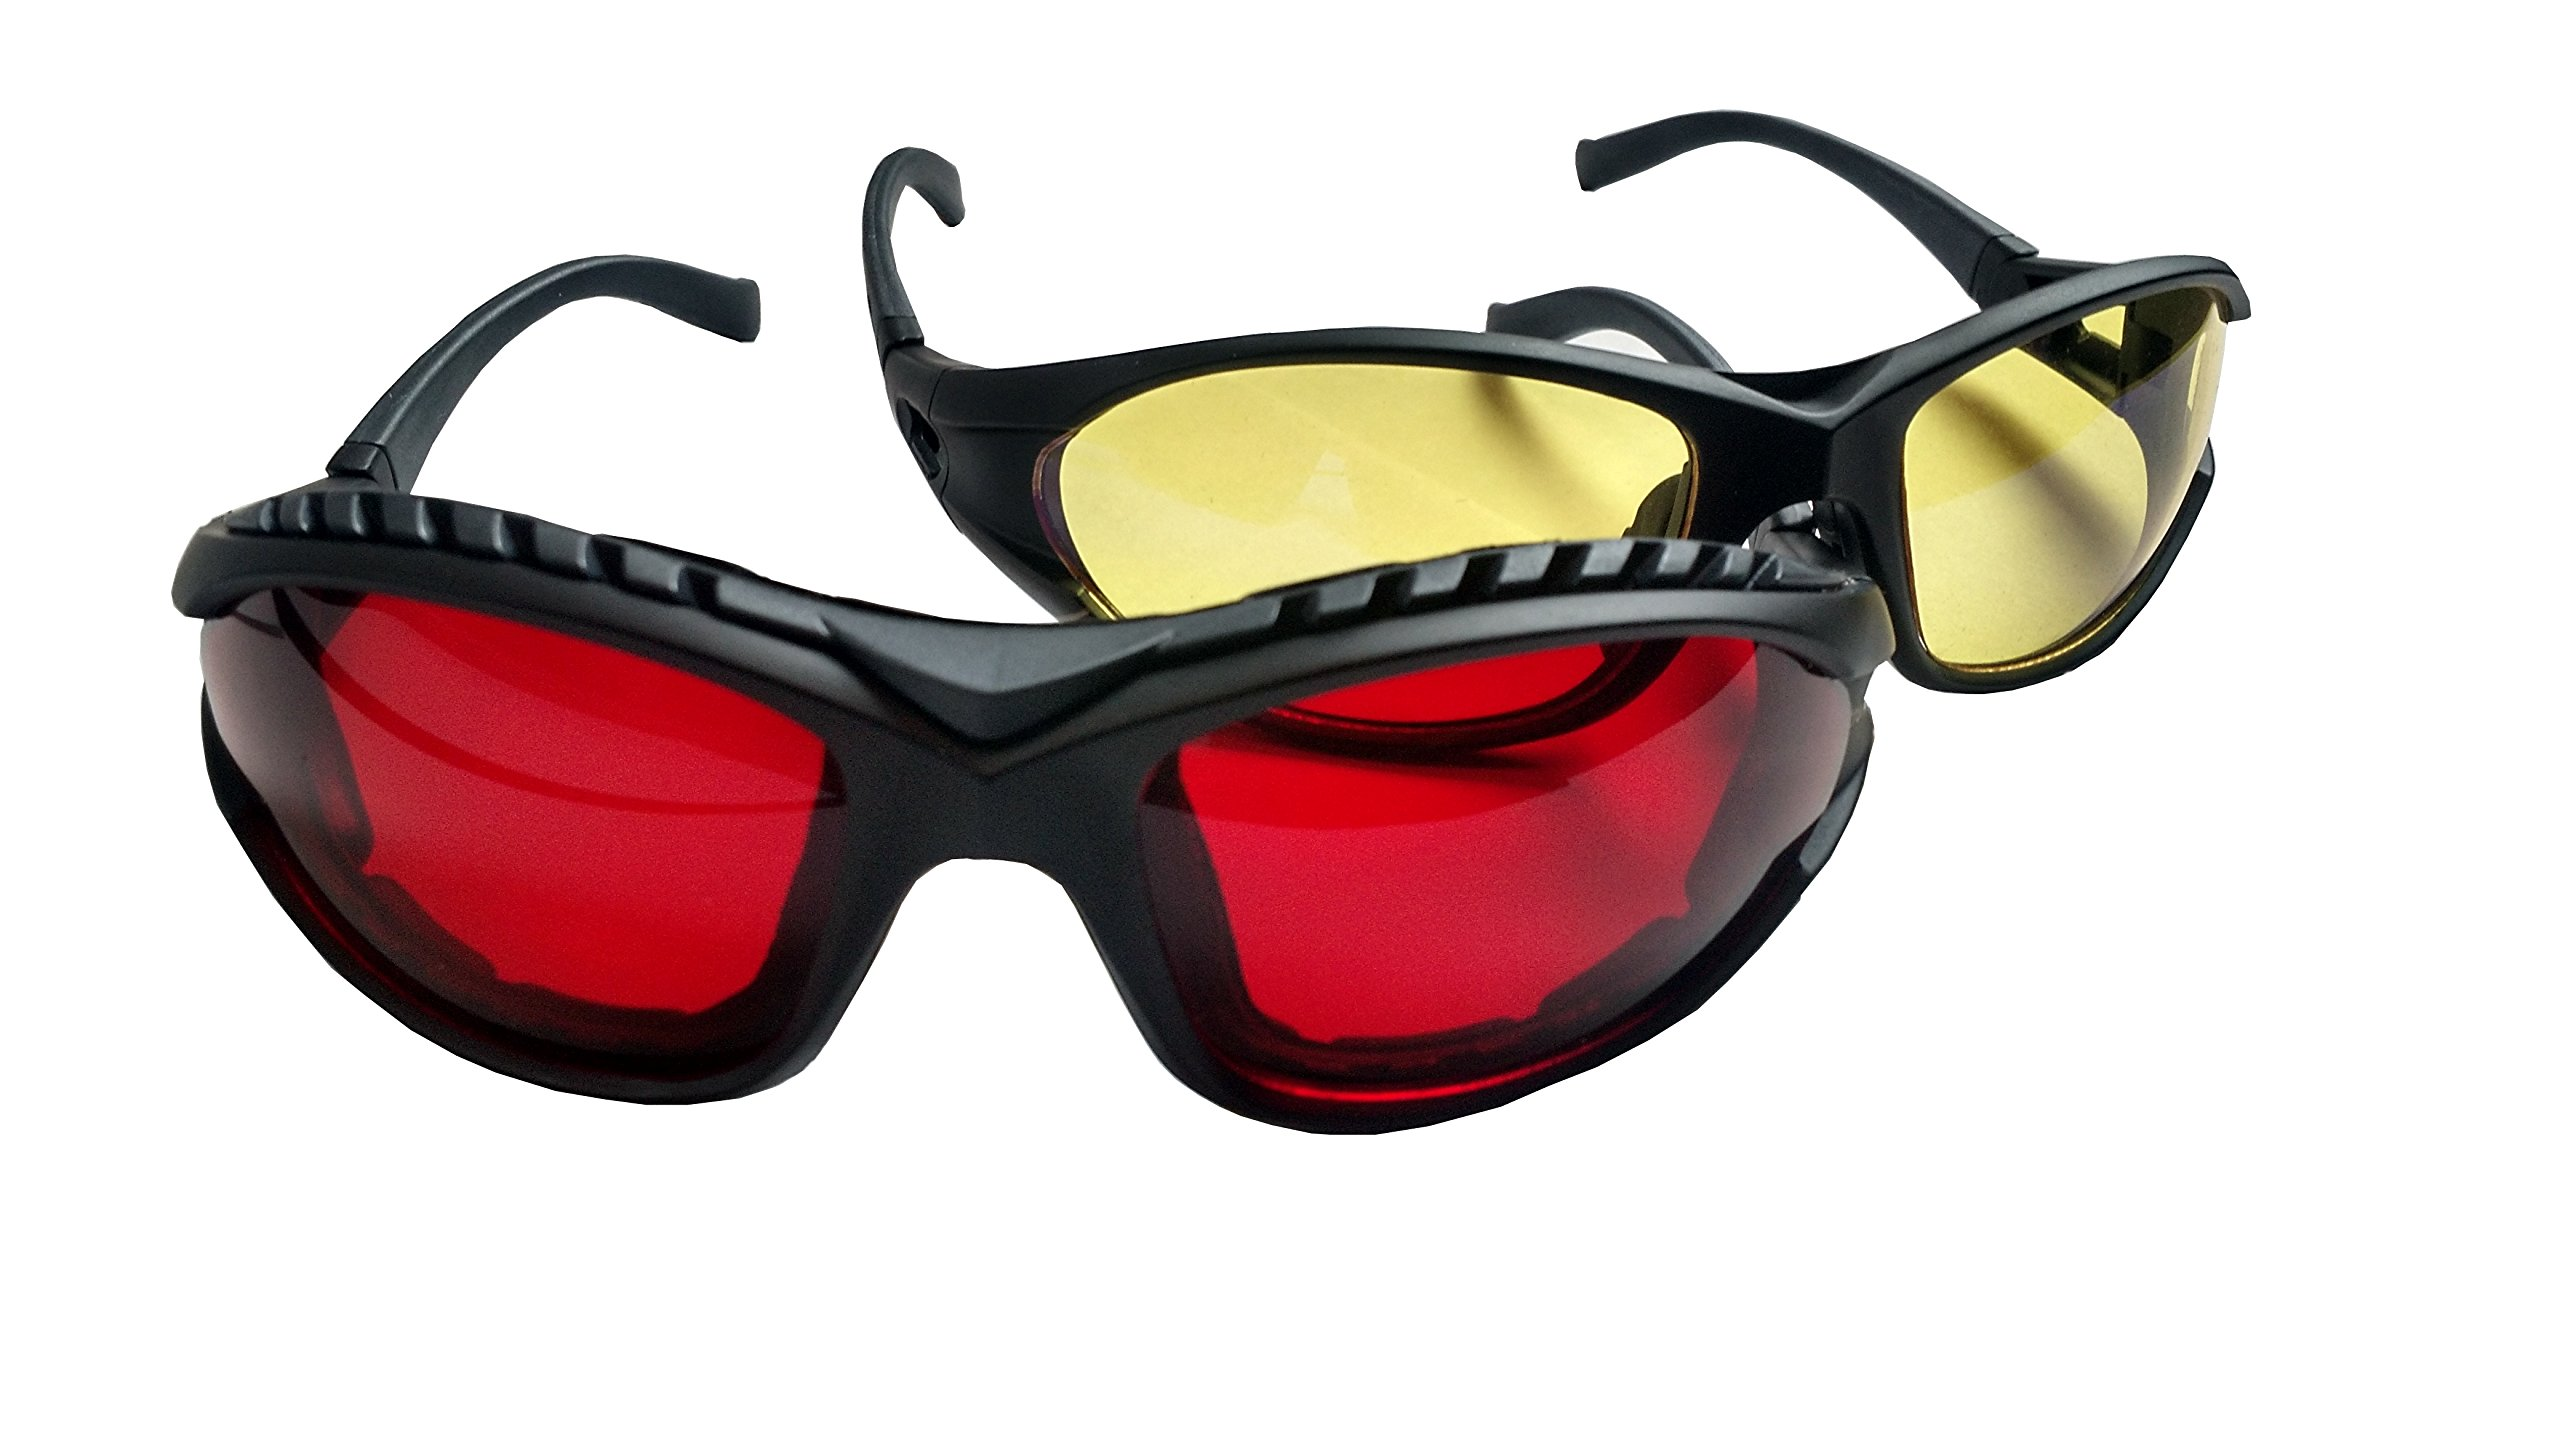 TrueDark Twilight and Daywalker box set - Protect your eyes, sleep and performance with new, patent pending technology